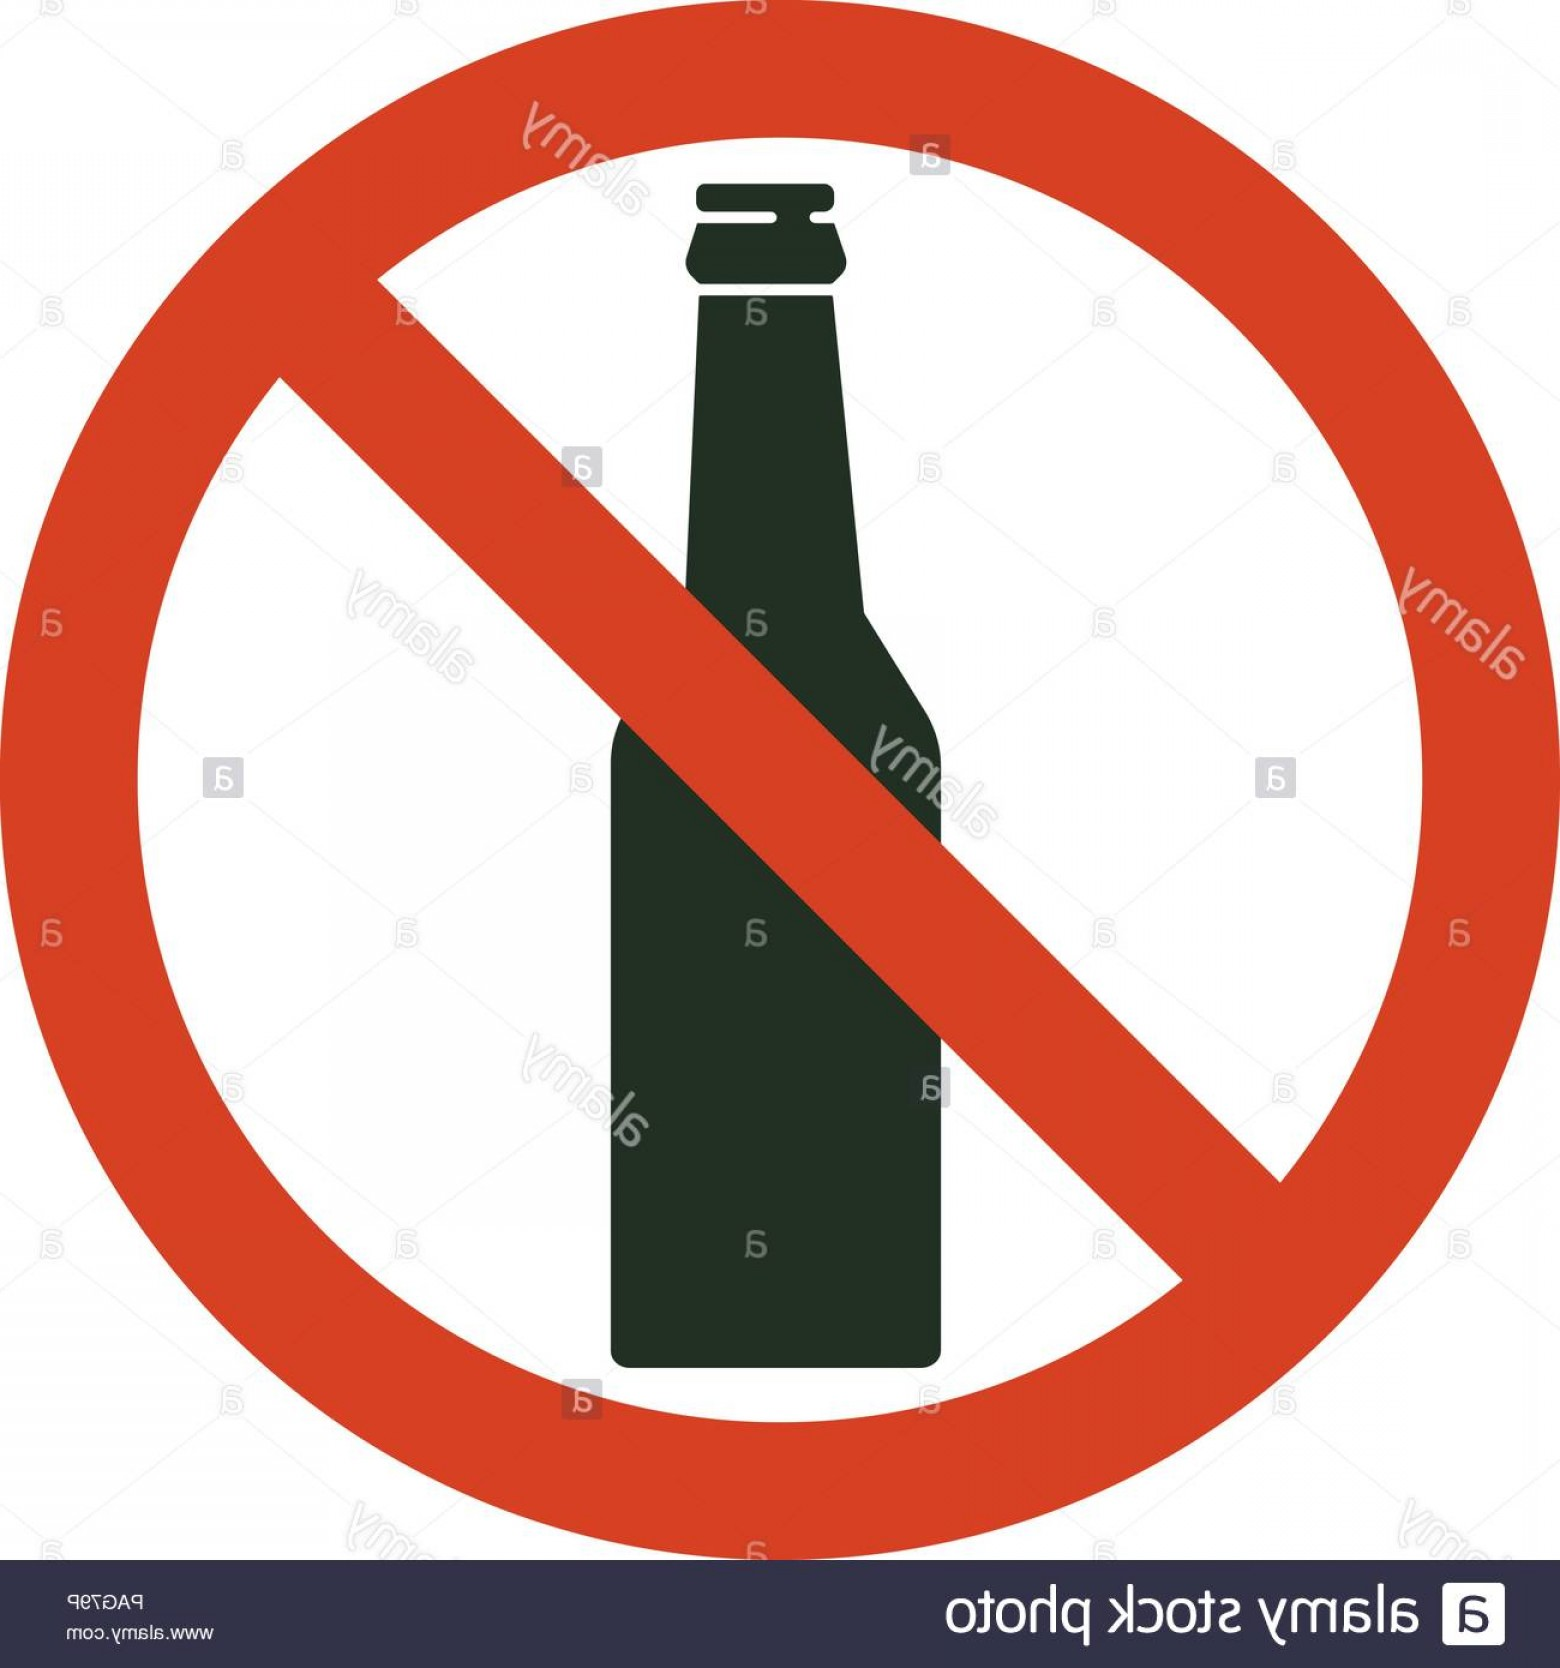 Vector No Alcohol: No Alcohol Sign Prohibiting Alcohol Beverages Red Forbidden Symbol With Bottle Vector Isolated Illustration Image